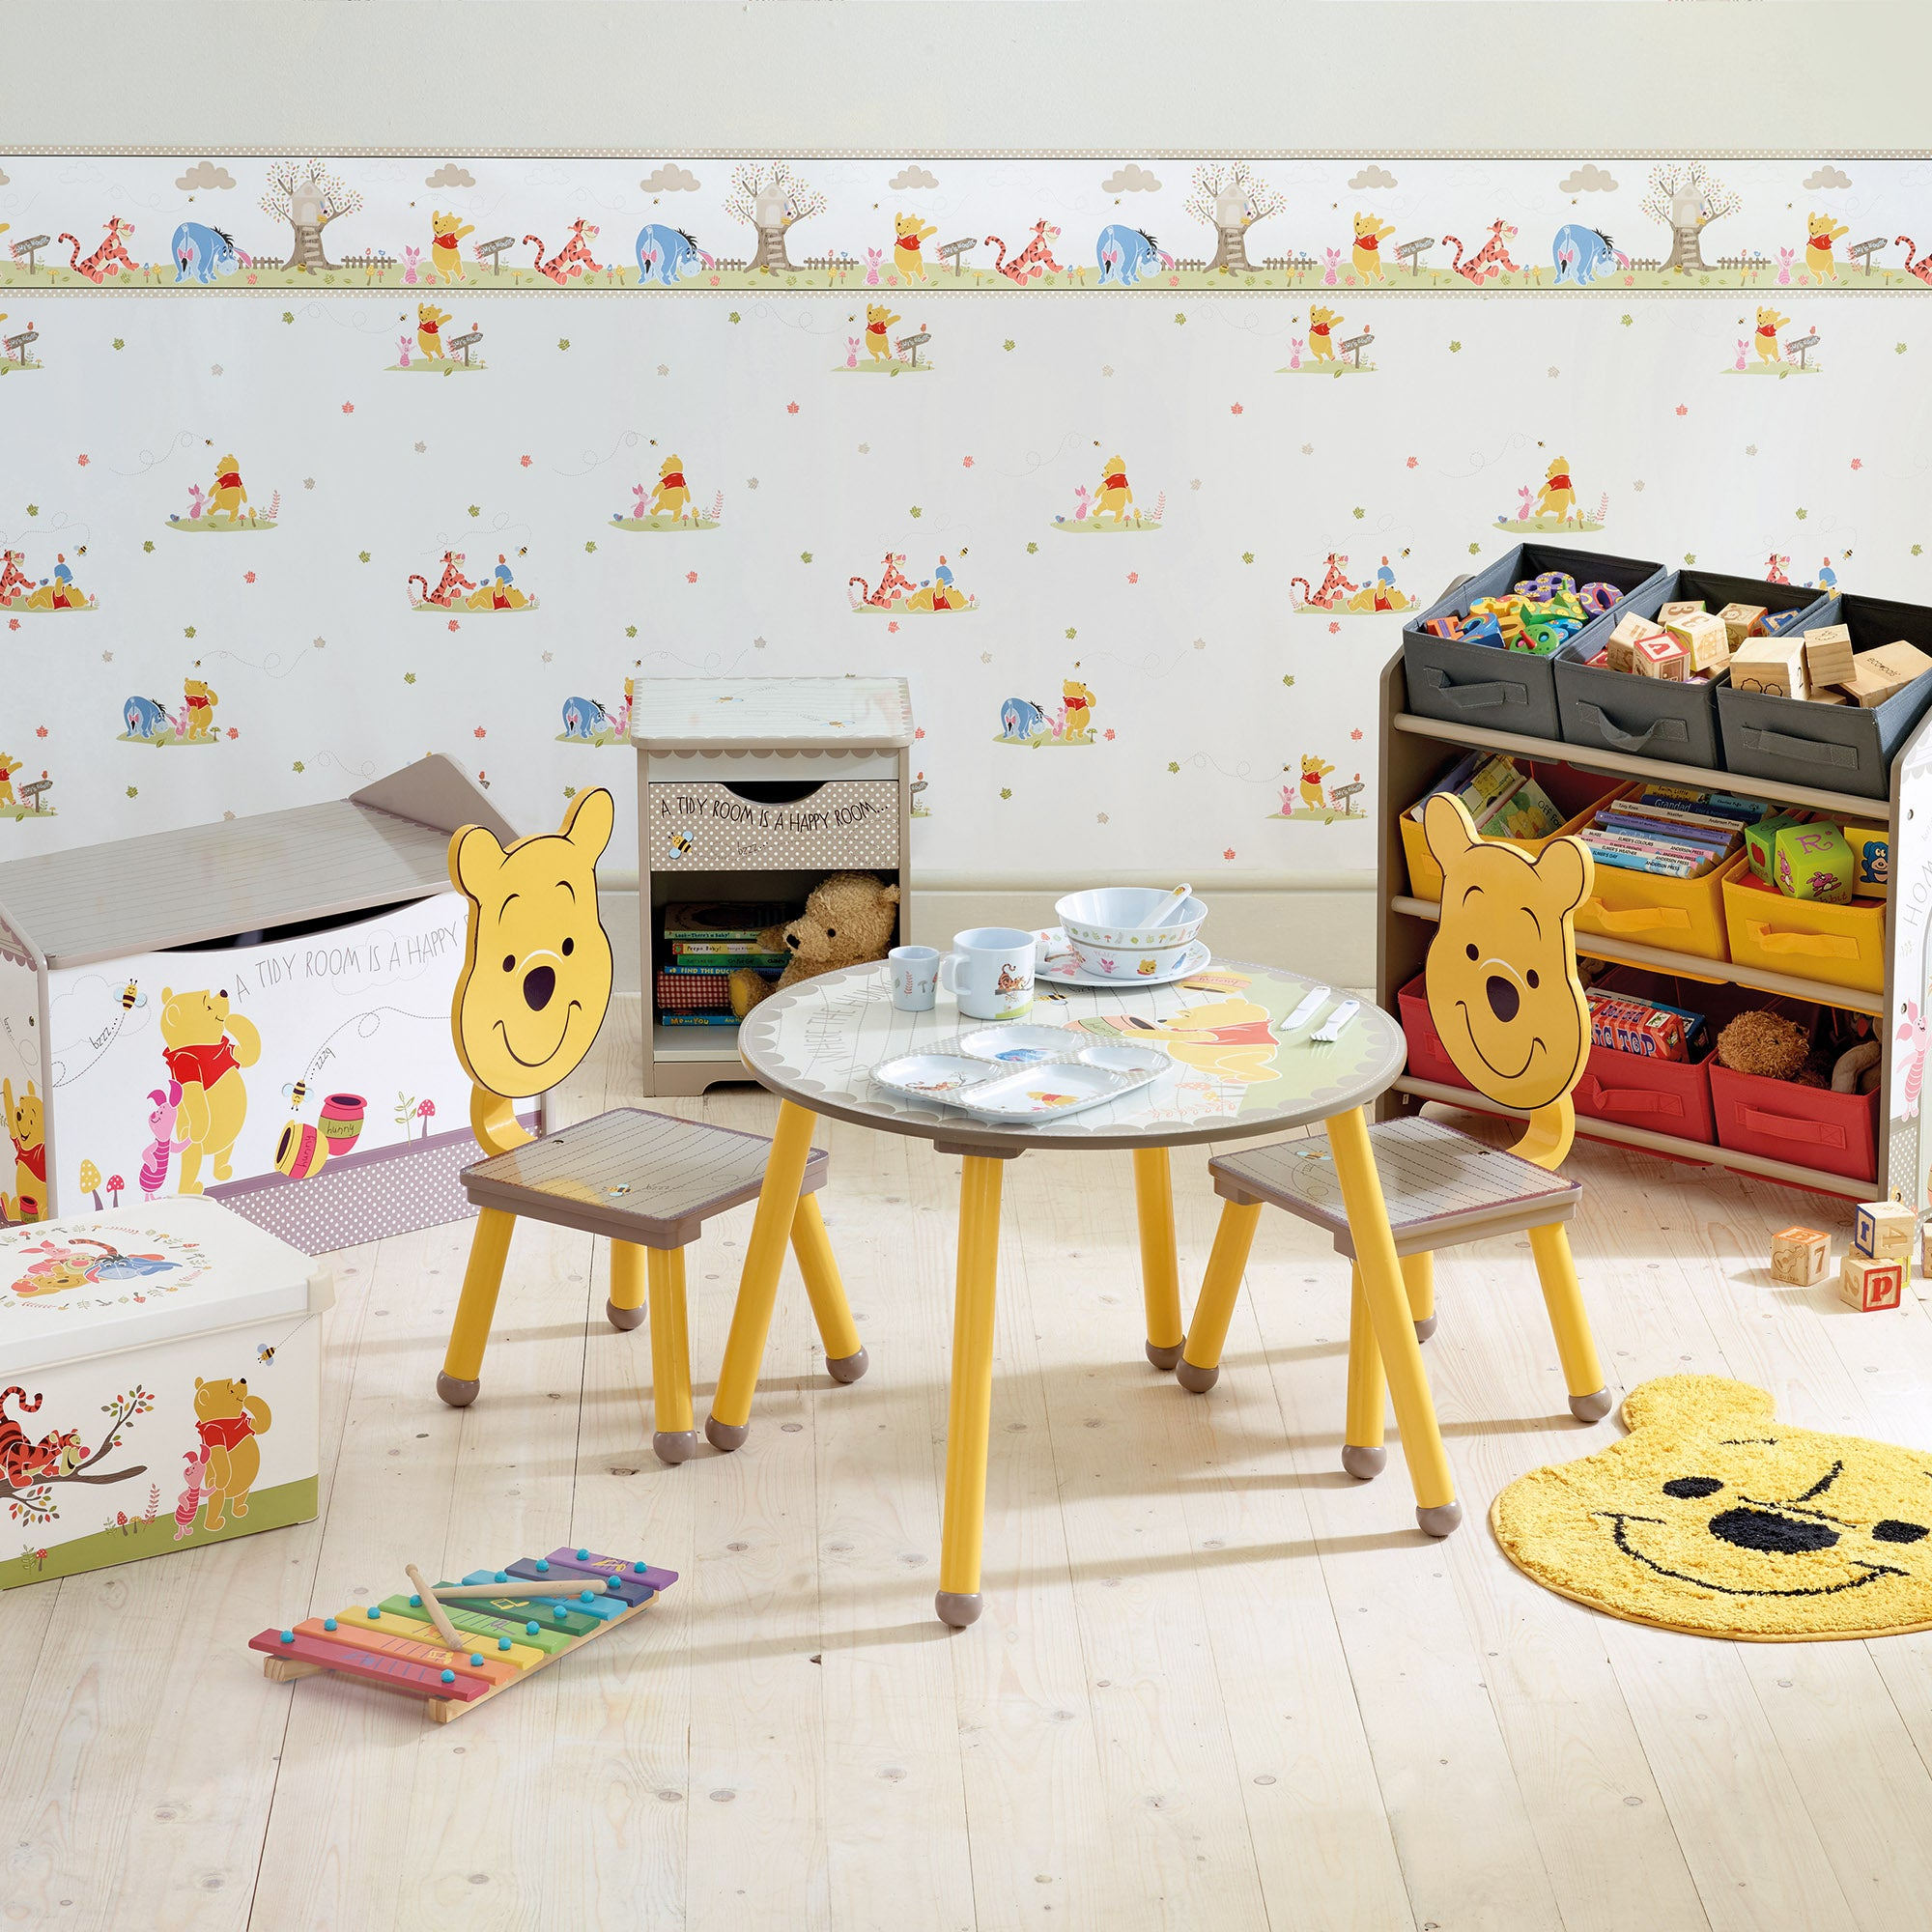 Delightful Disney Winnie The Pooh Furniture Collection